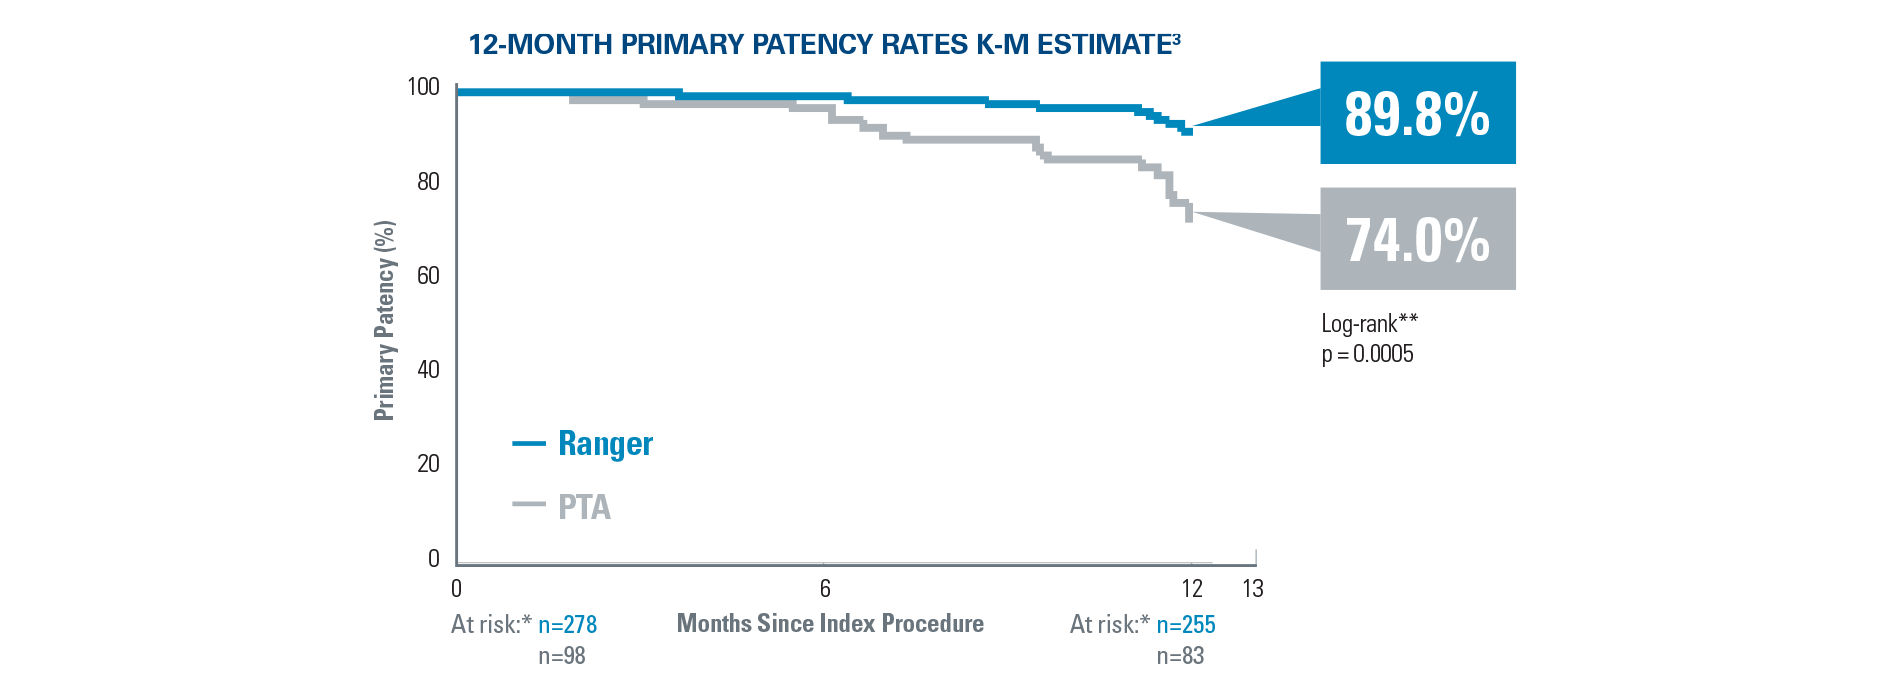 12-Month Primary Patency